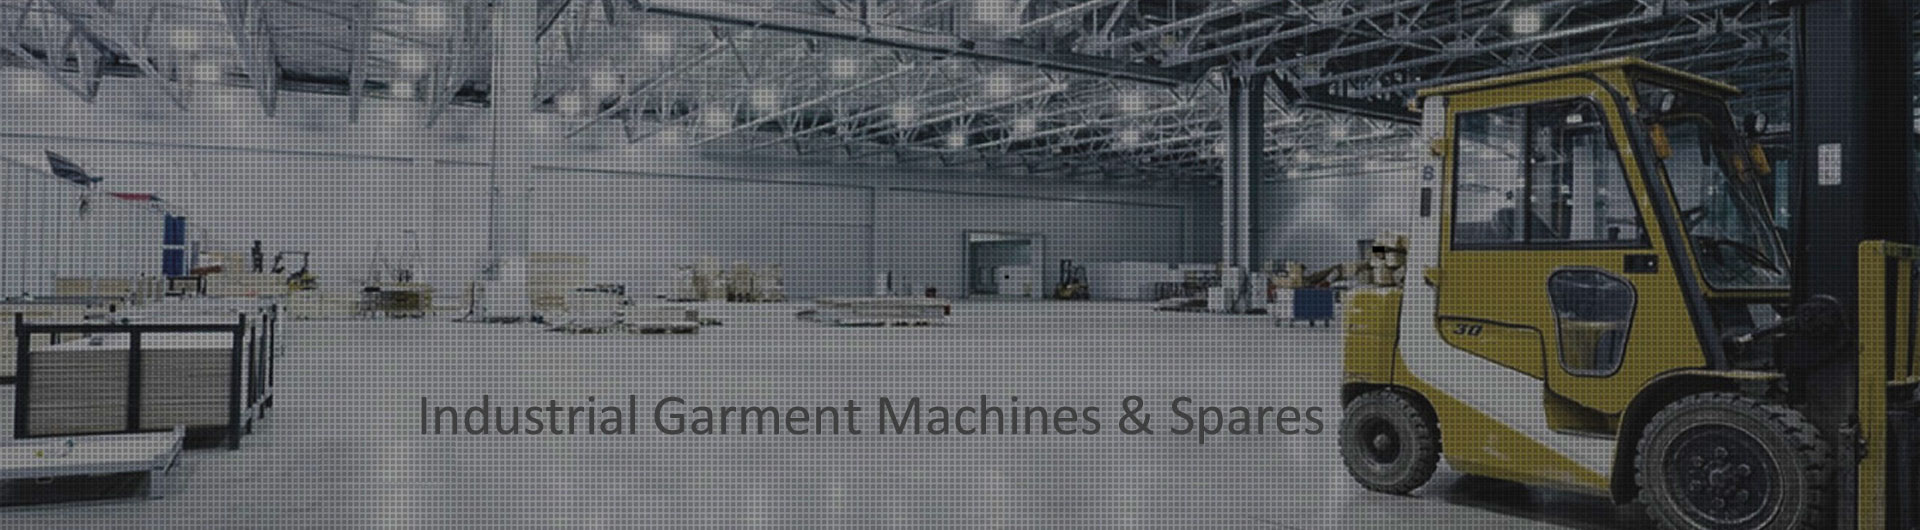 Industrial Garment Machines and Spares